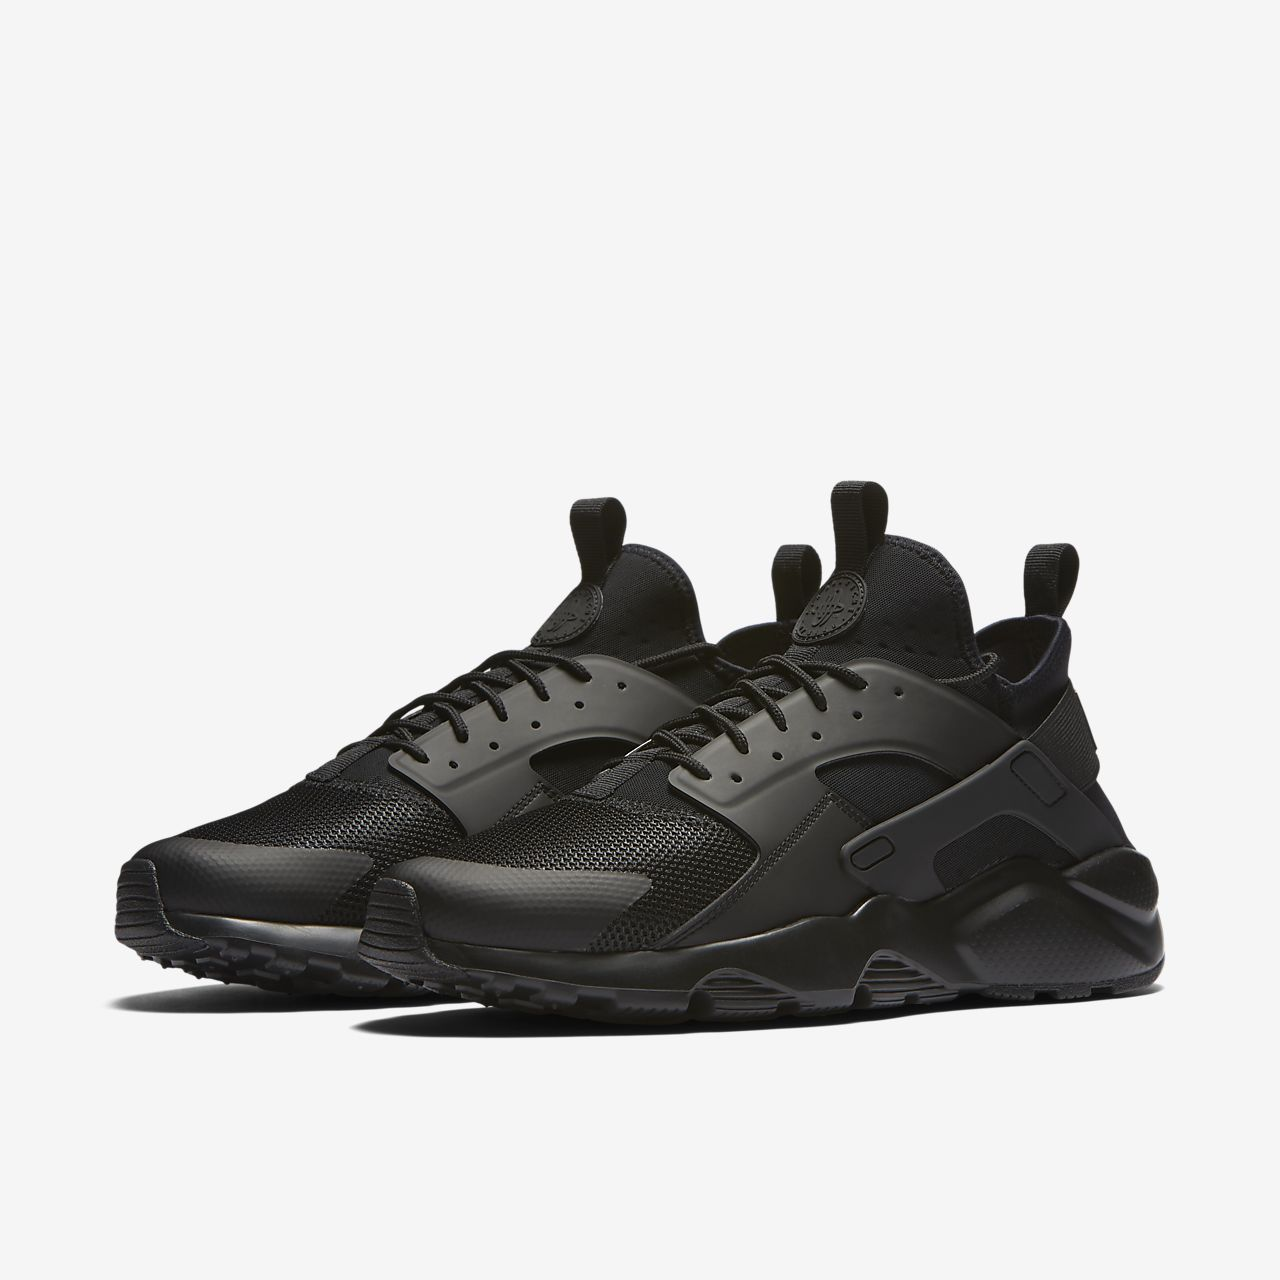 Huarache Air Ultra Men's Nike Shoe kiOPZlwTXu